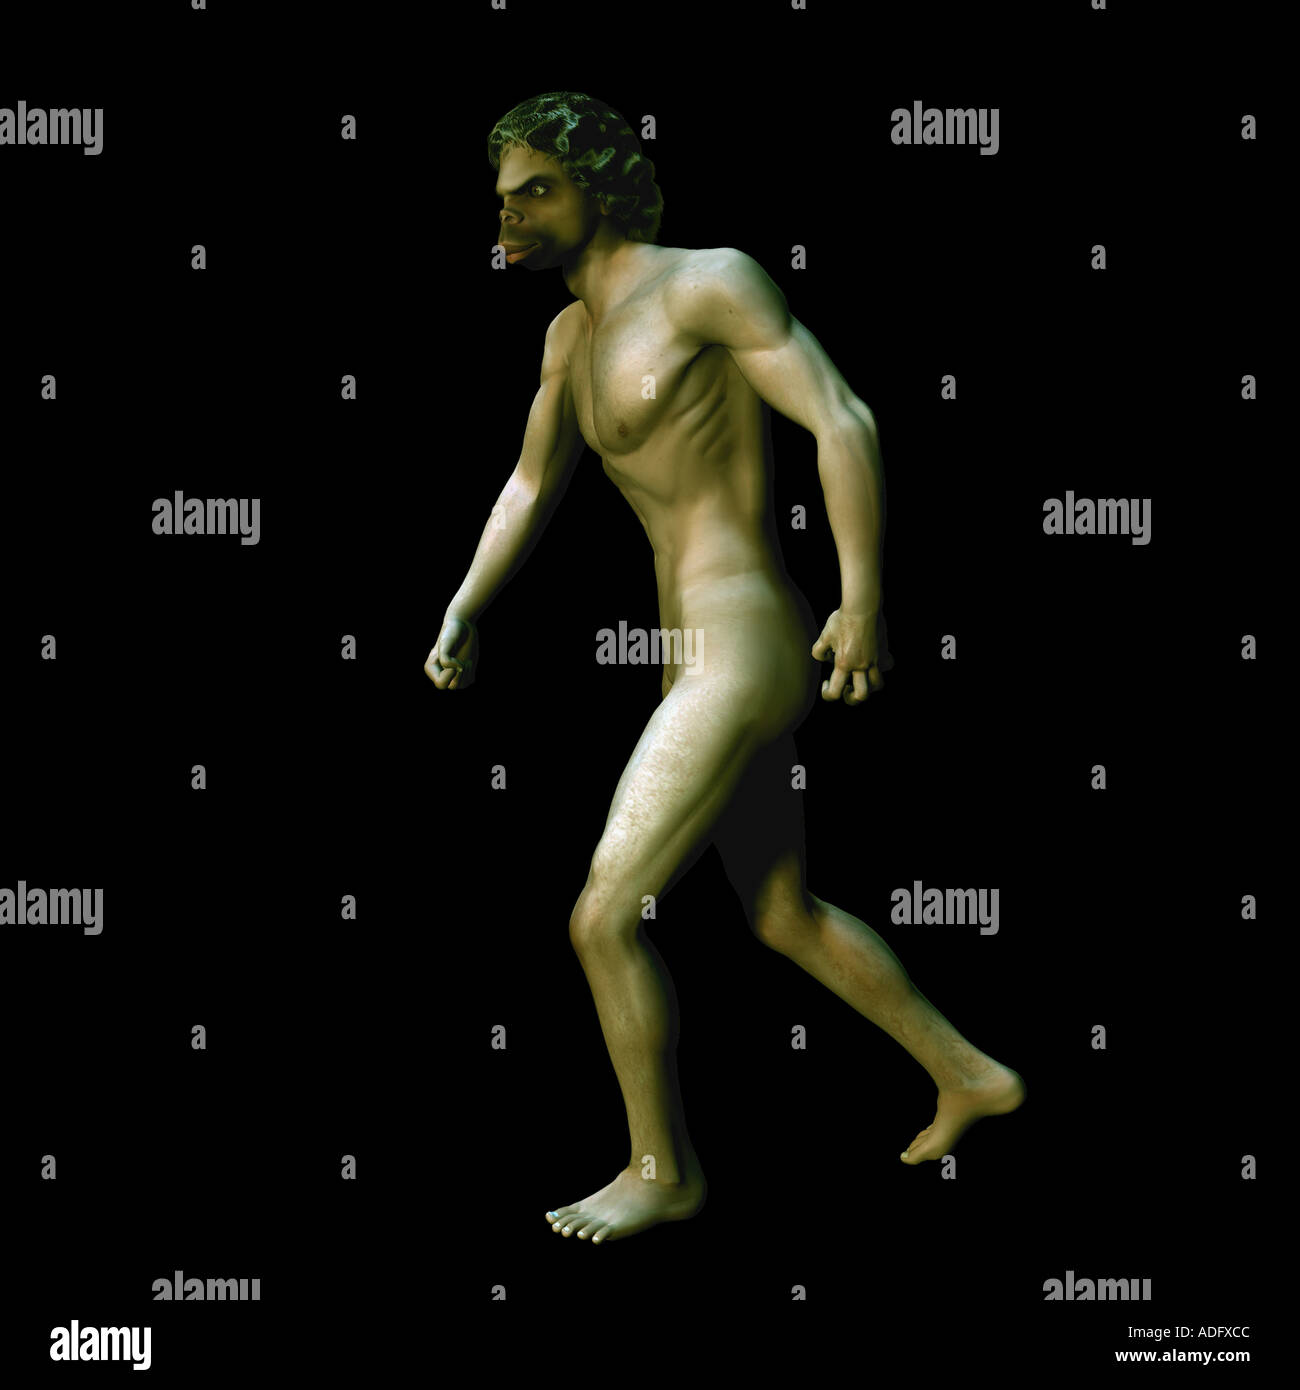 cave man prehistoric relative of humans early homosapien - Stock Image